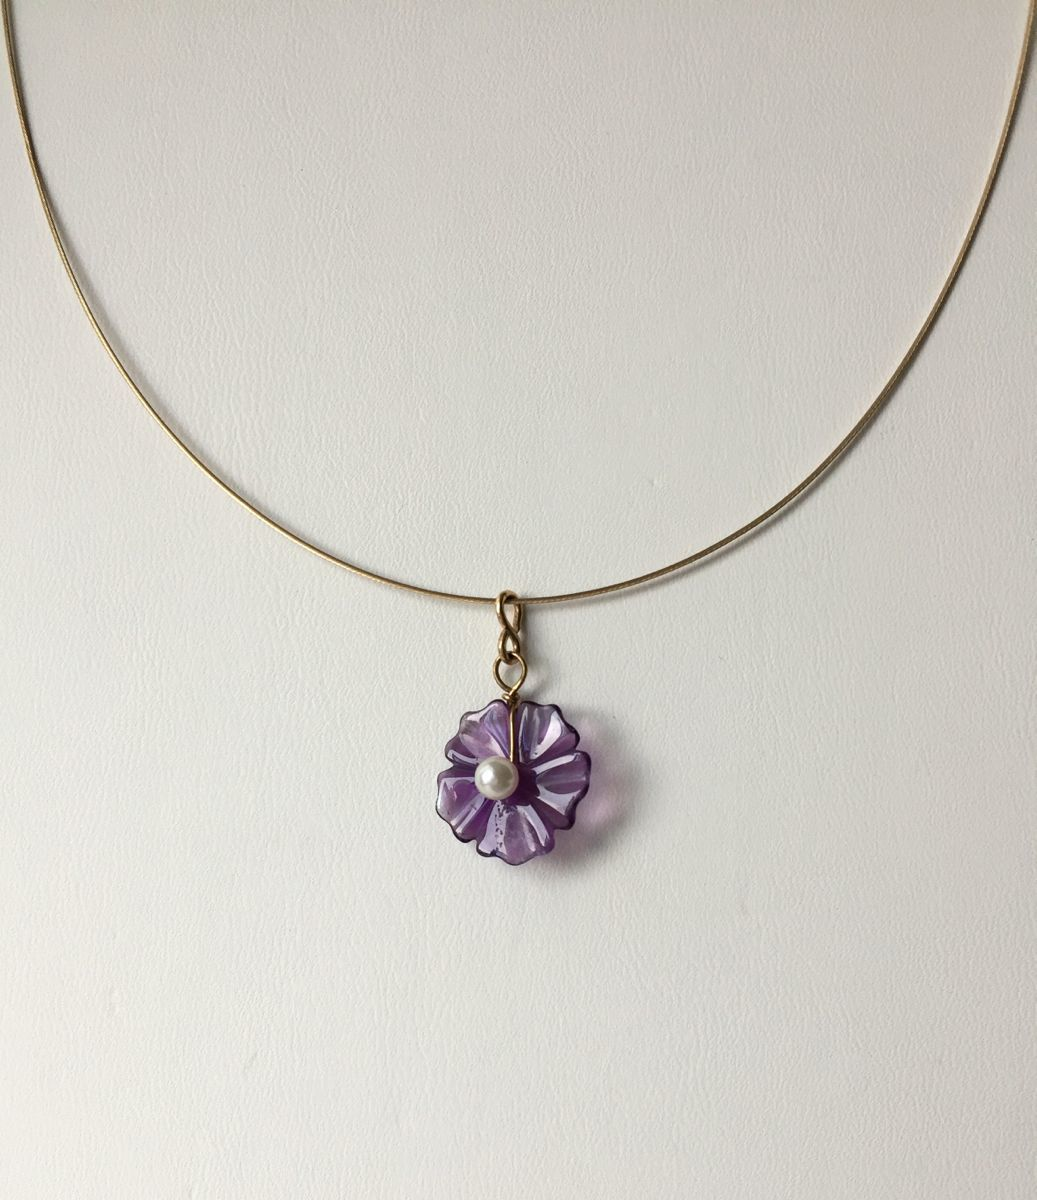 384 - MN Amethyst, Pearl, 14Kt Gold (large view)